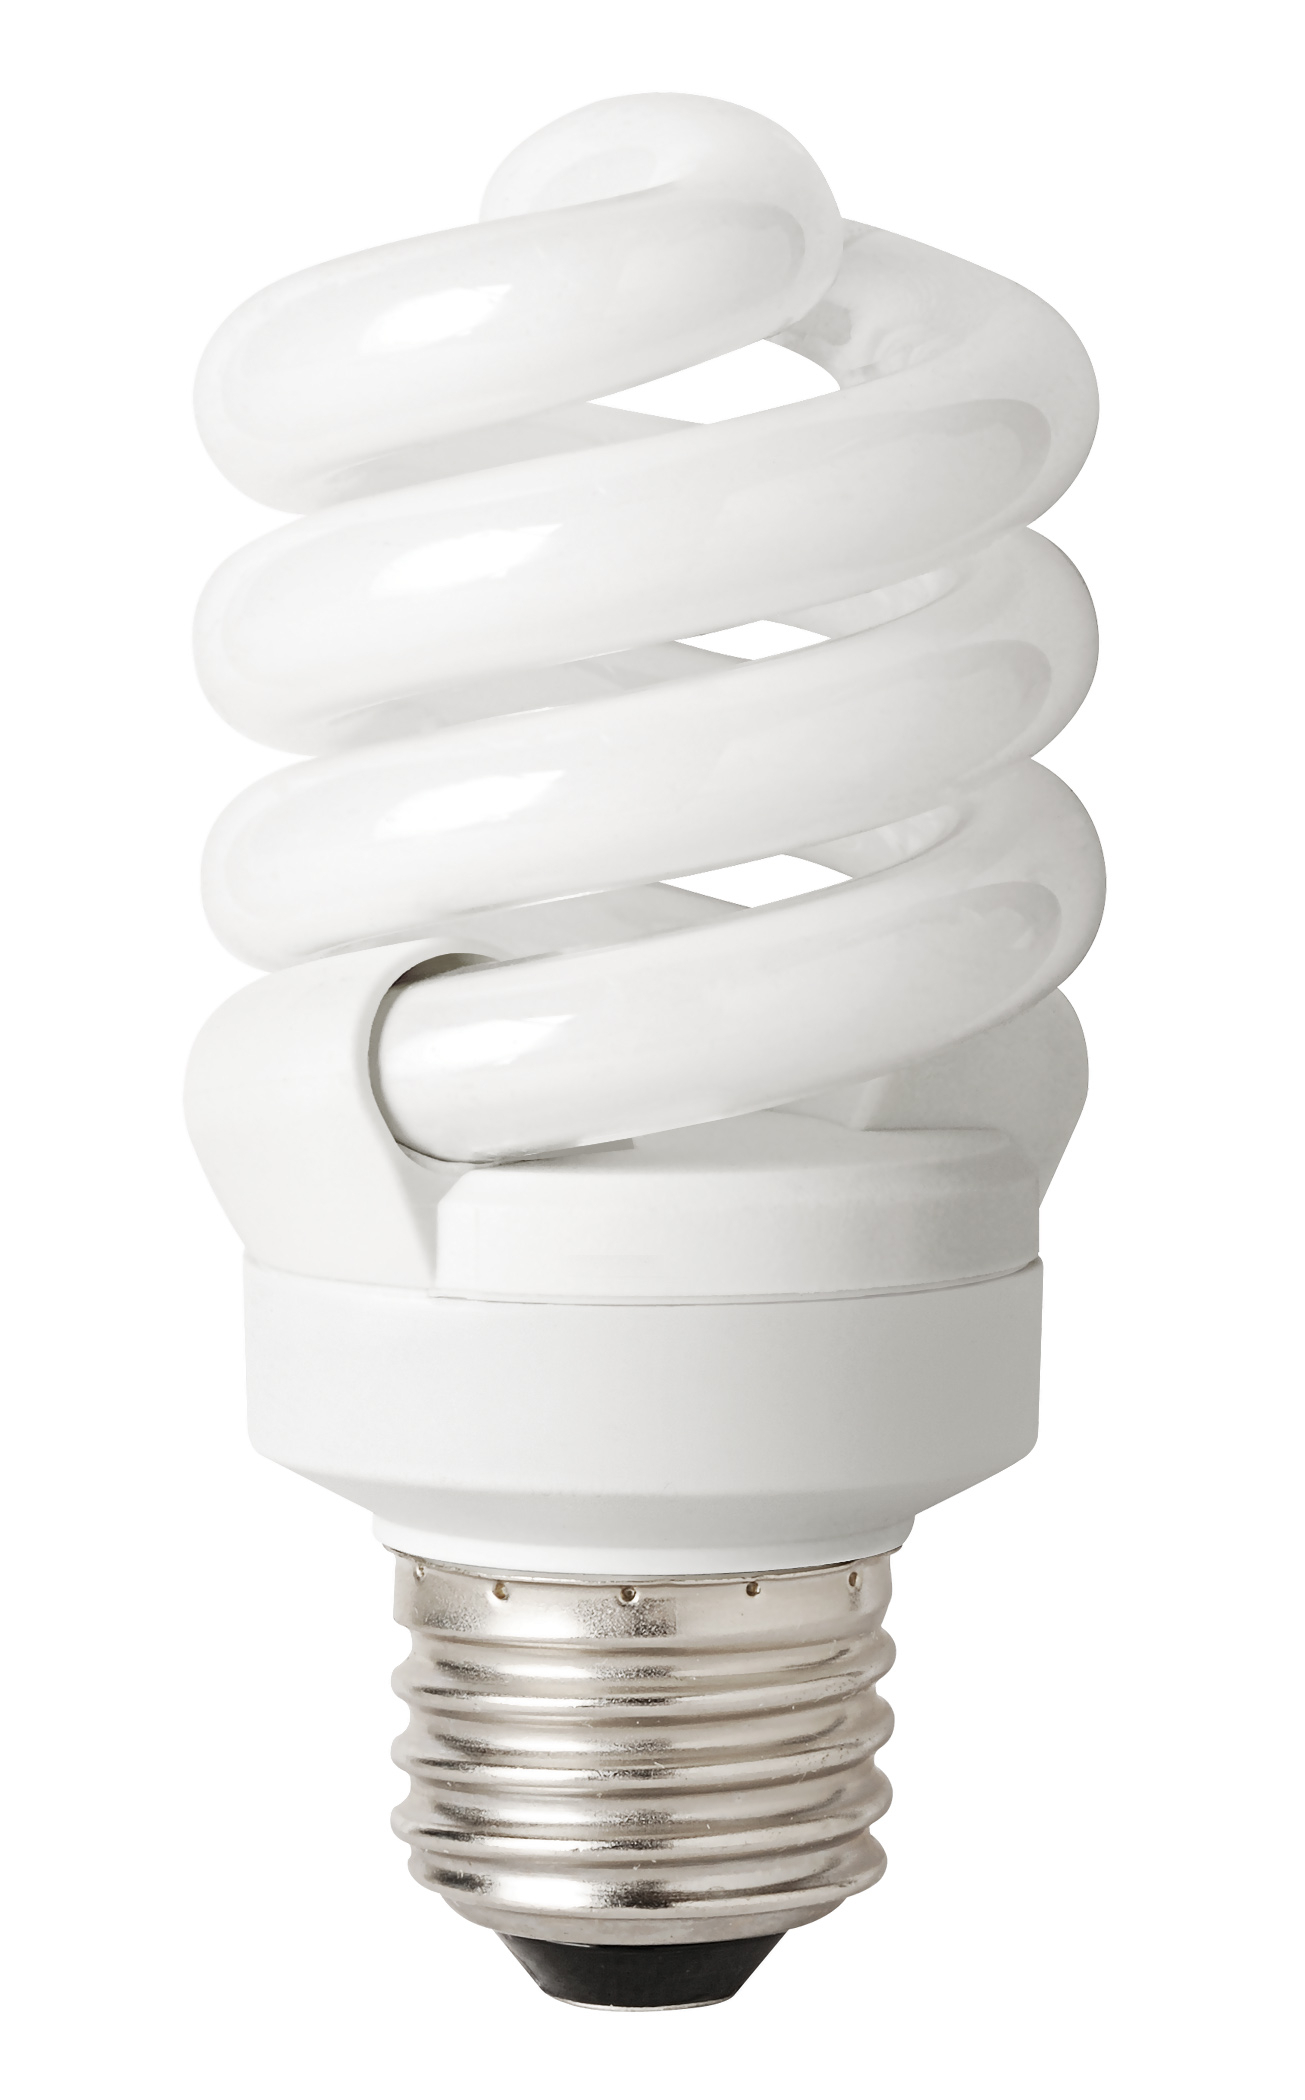 Cfl Bulbs How To Change A Circular Fluorescent Light Bulb Shelly